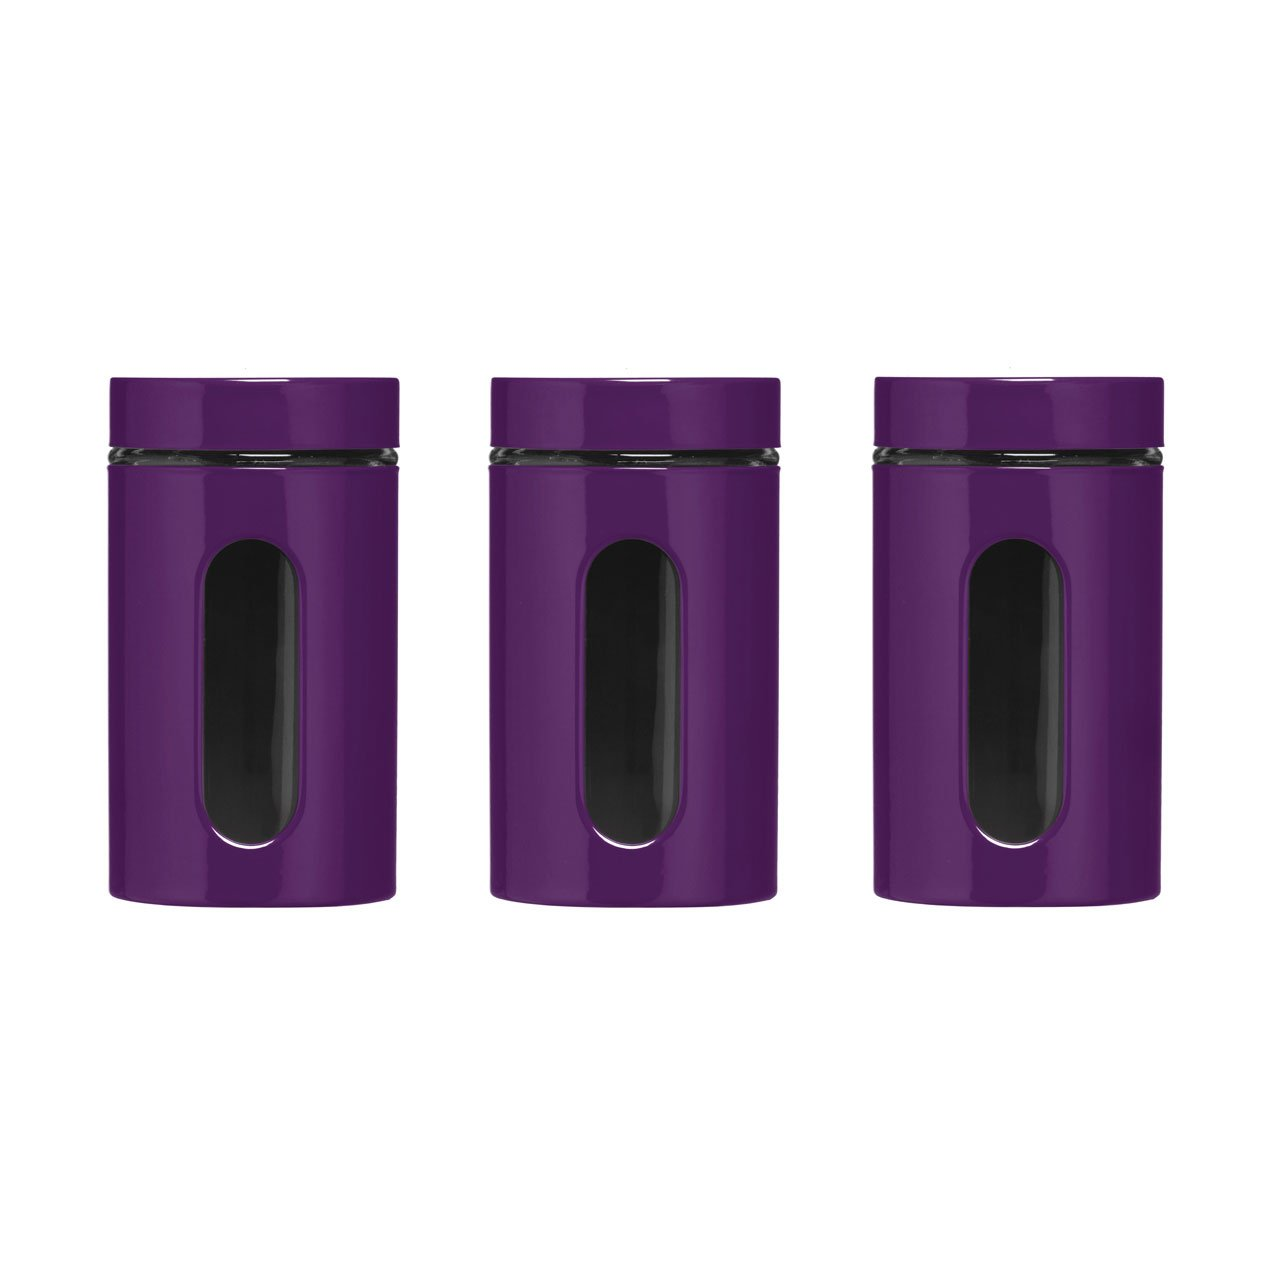 Purple Enamel Finish Tea Coffee Sugar Jar Canisters 1000ml Multi Purpose Storage Jars Set With Glass Window Amazon.co.uk Kitchen u0026 Home  sc 1 st  Amazon UK & Purple Enamel Finish Tea Coffee Sugar Jar Canisters 1000ml Multi ...